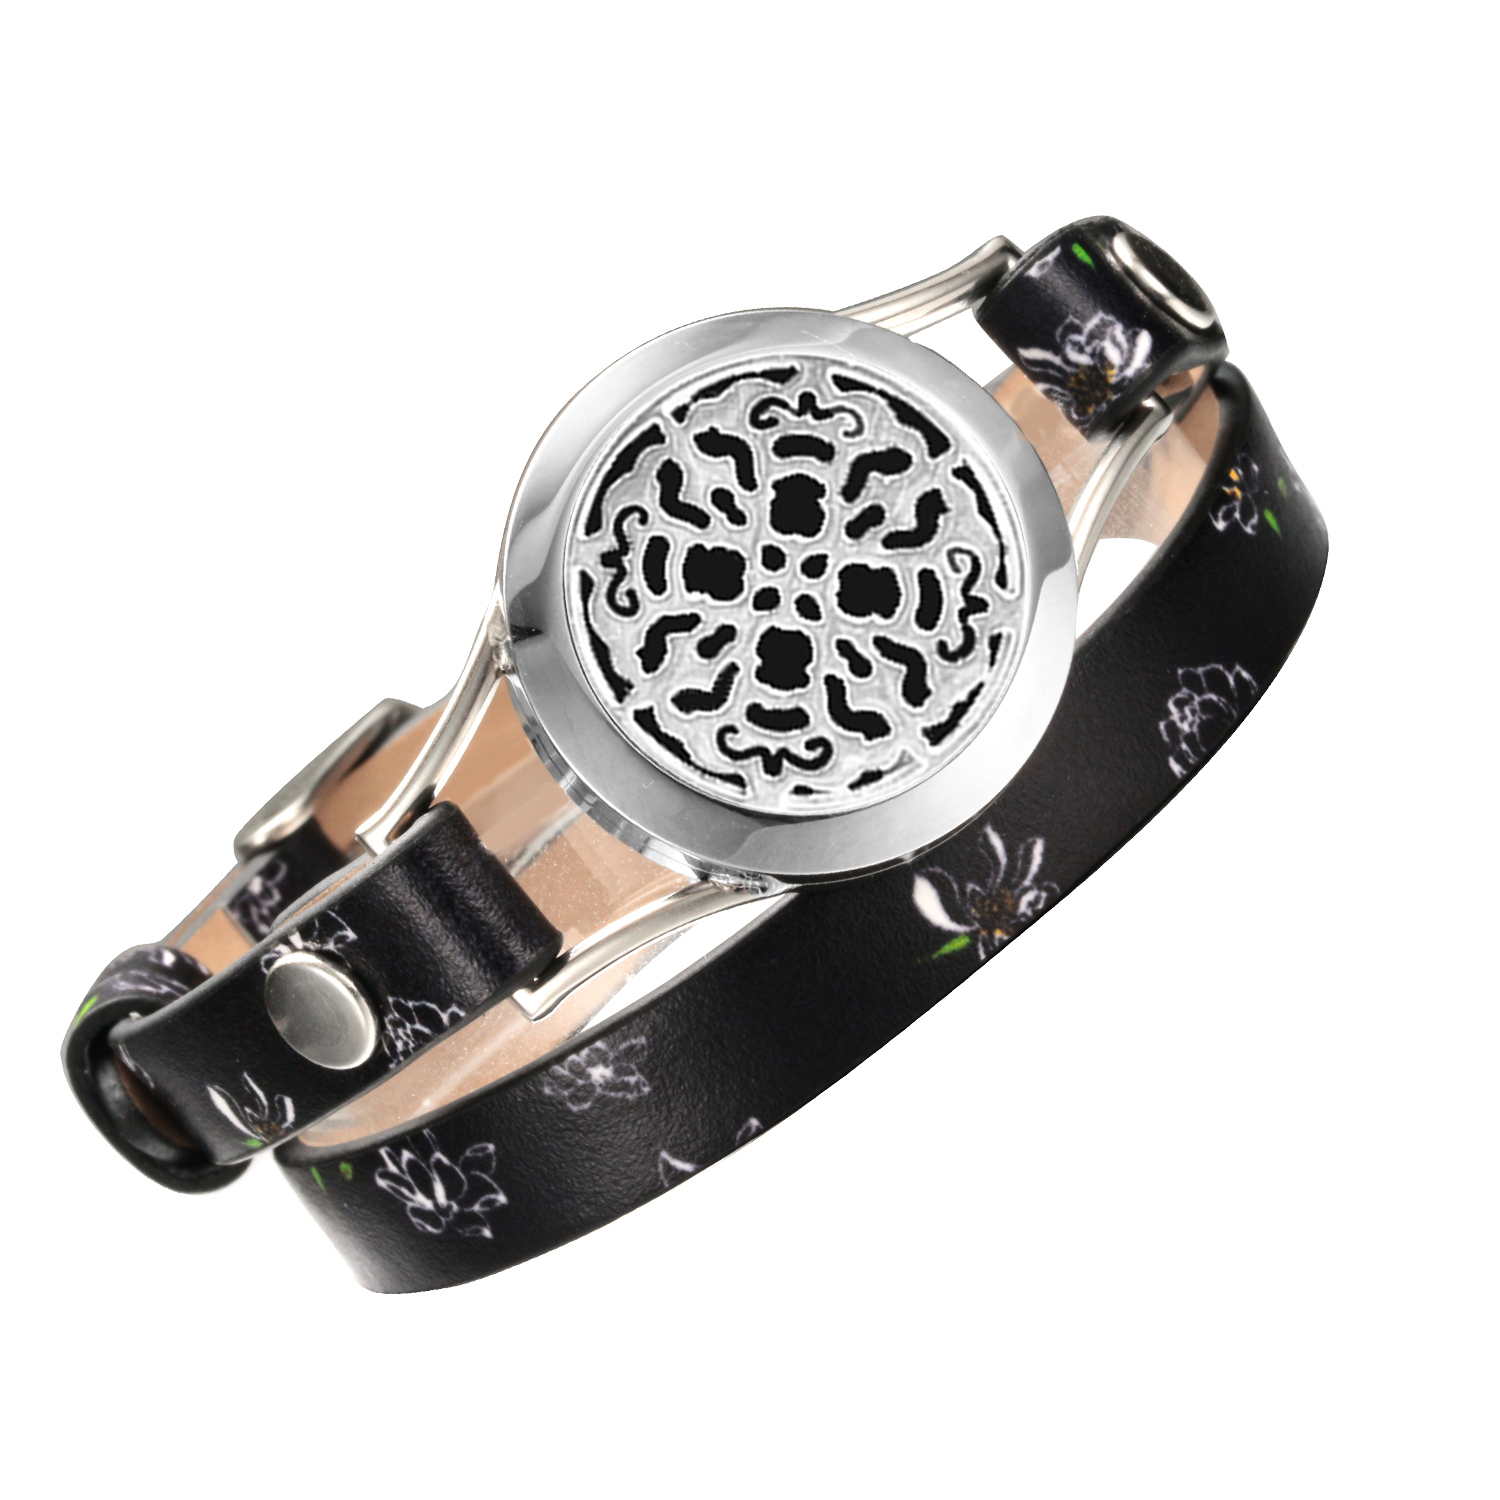 Charm Bracelet Jewelry for Women aromatherapy perfume diffuser Stainless Steel Metal Black Real Leather bracelet